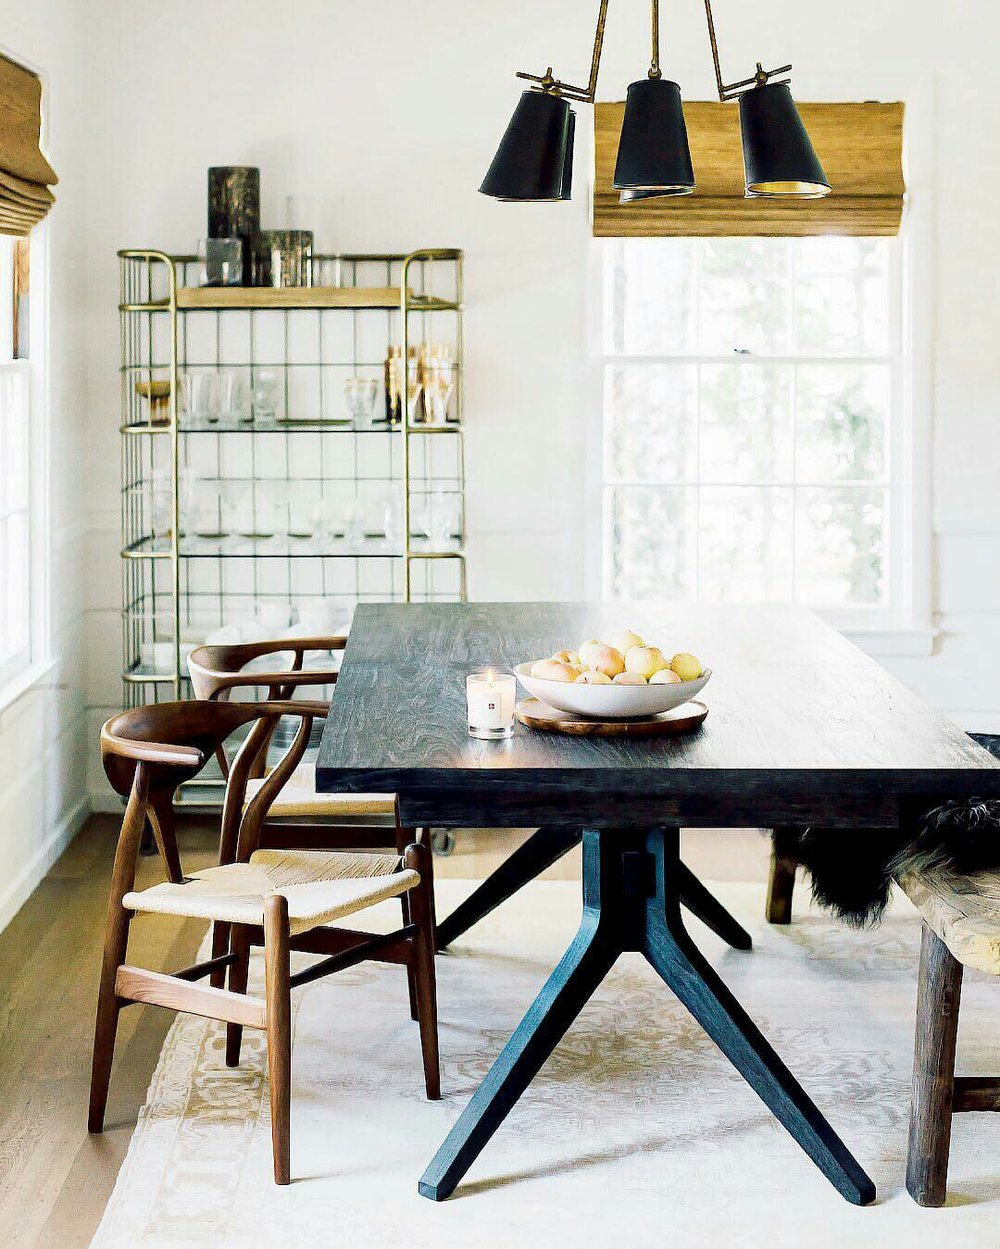 32 Stylish Dining Room Ideas To Impress Your Dinner Guests: Best Dining Table Ideas This Winter